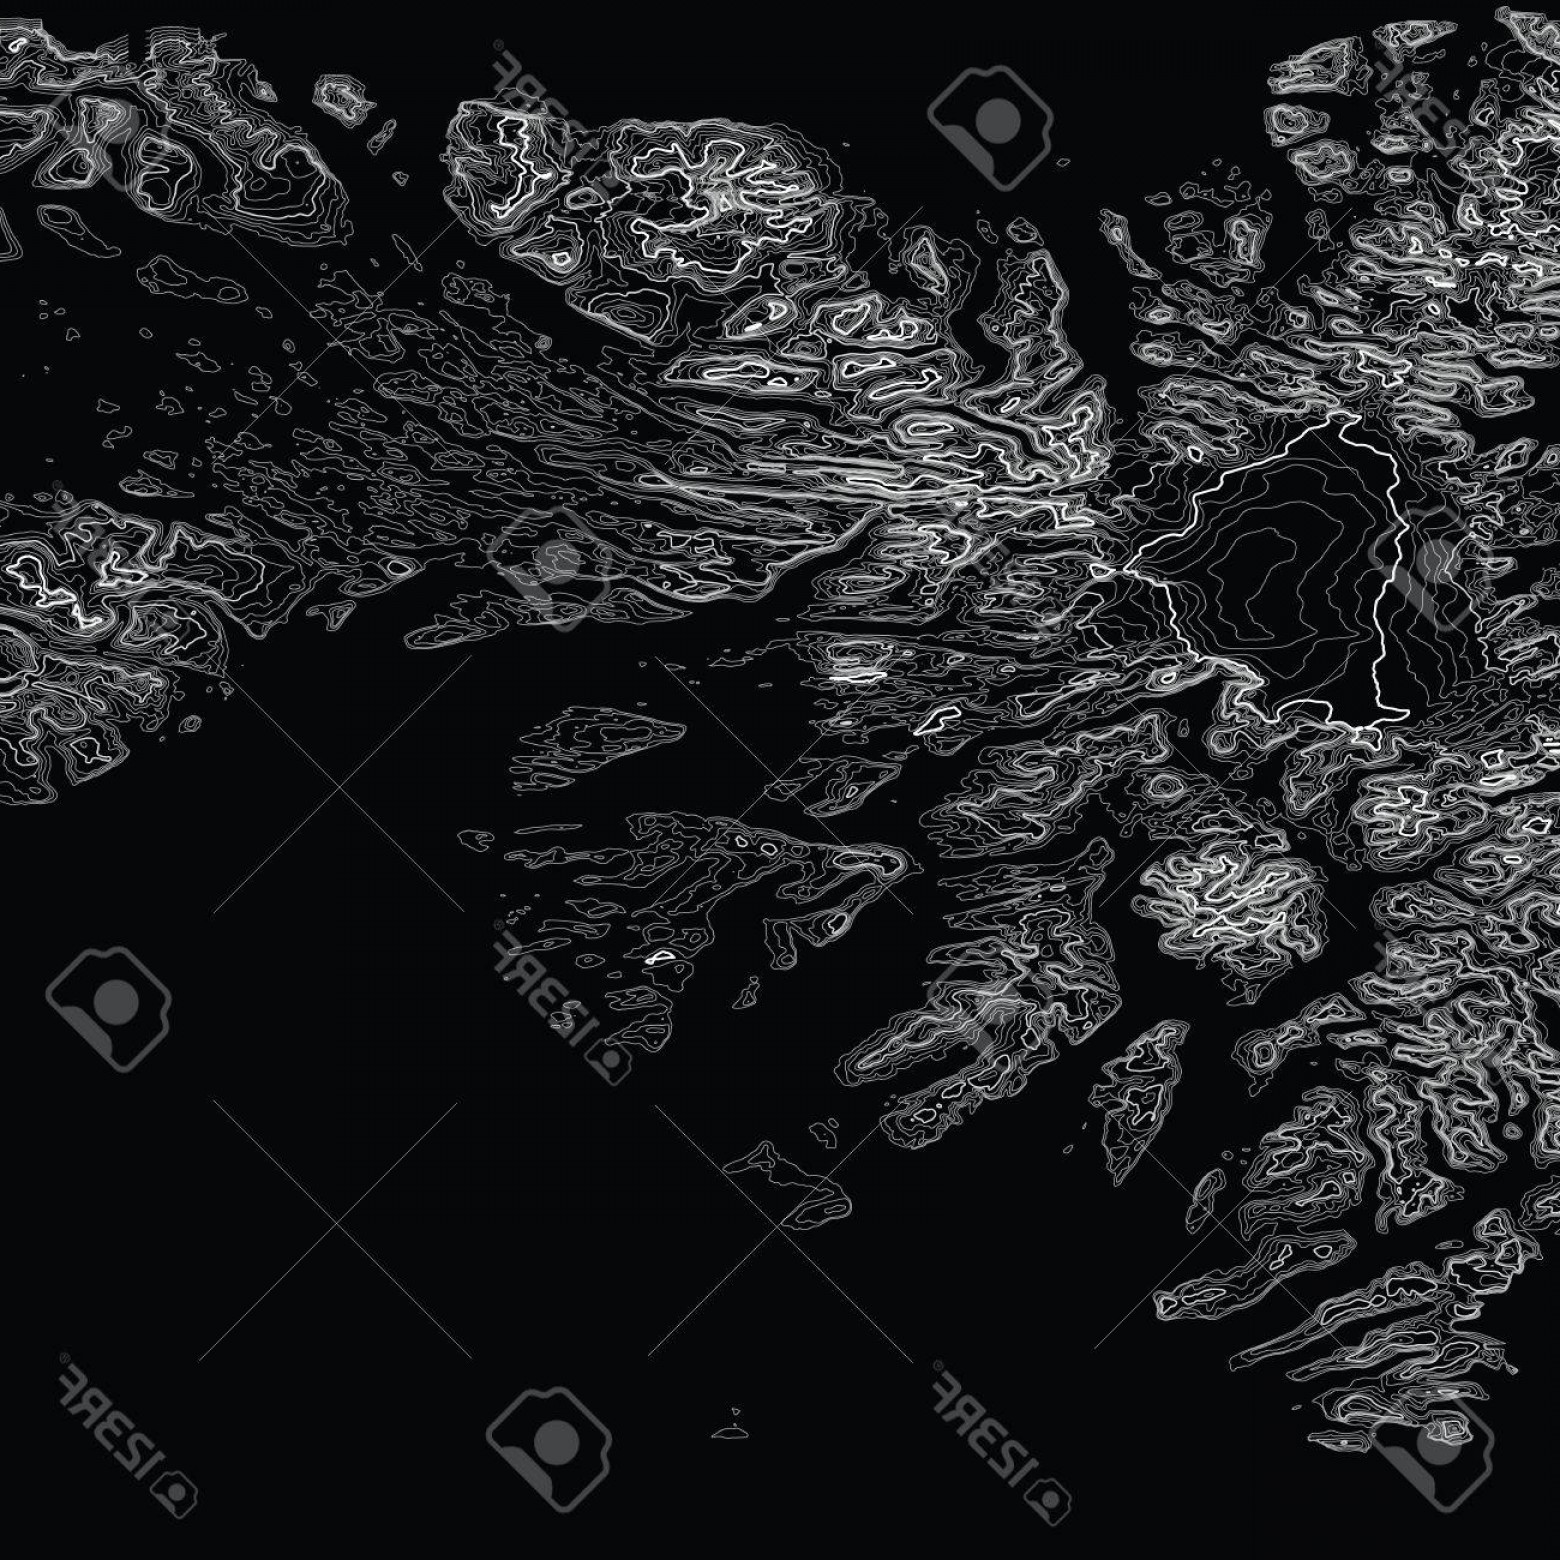 Geographic Leaf Vector: Photostock Vector Vector Abstract Grayscale Earth Relief Map Generated Conceptual Elevation Map Isolines Of Landscape